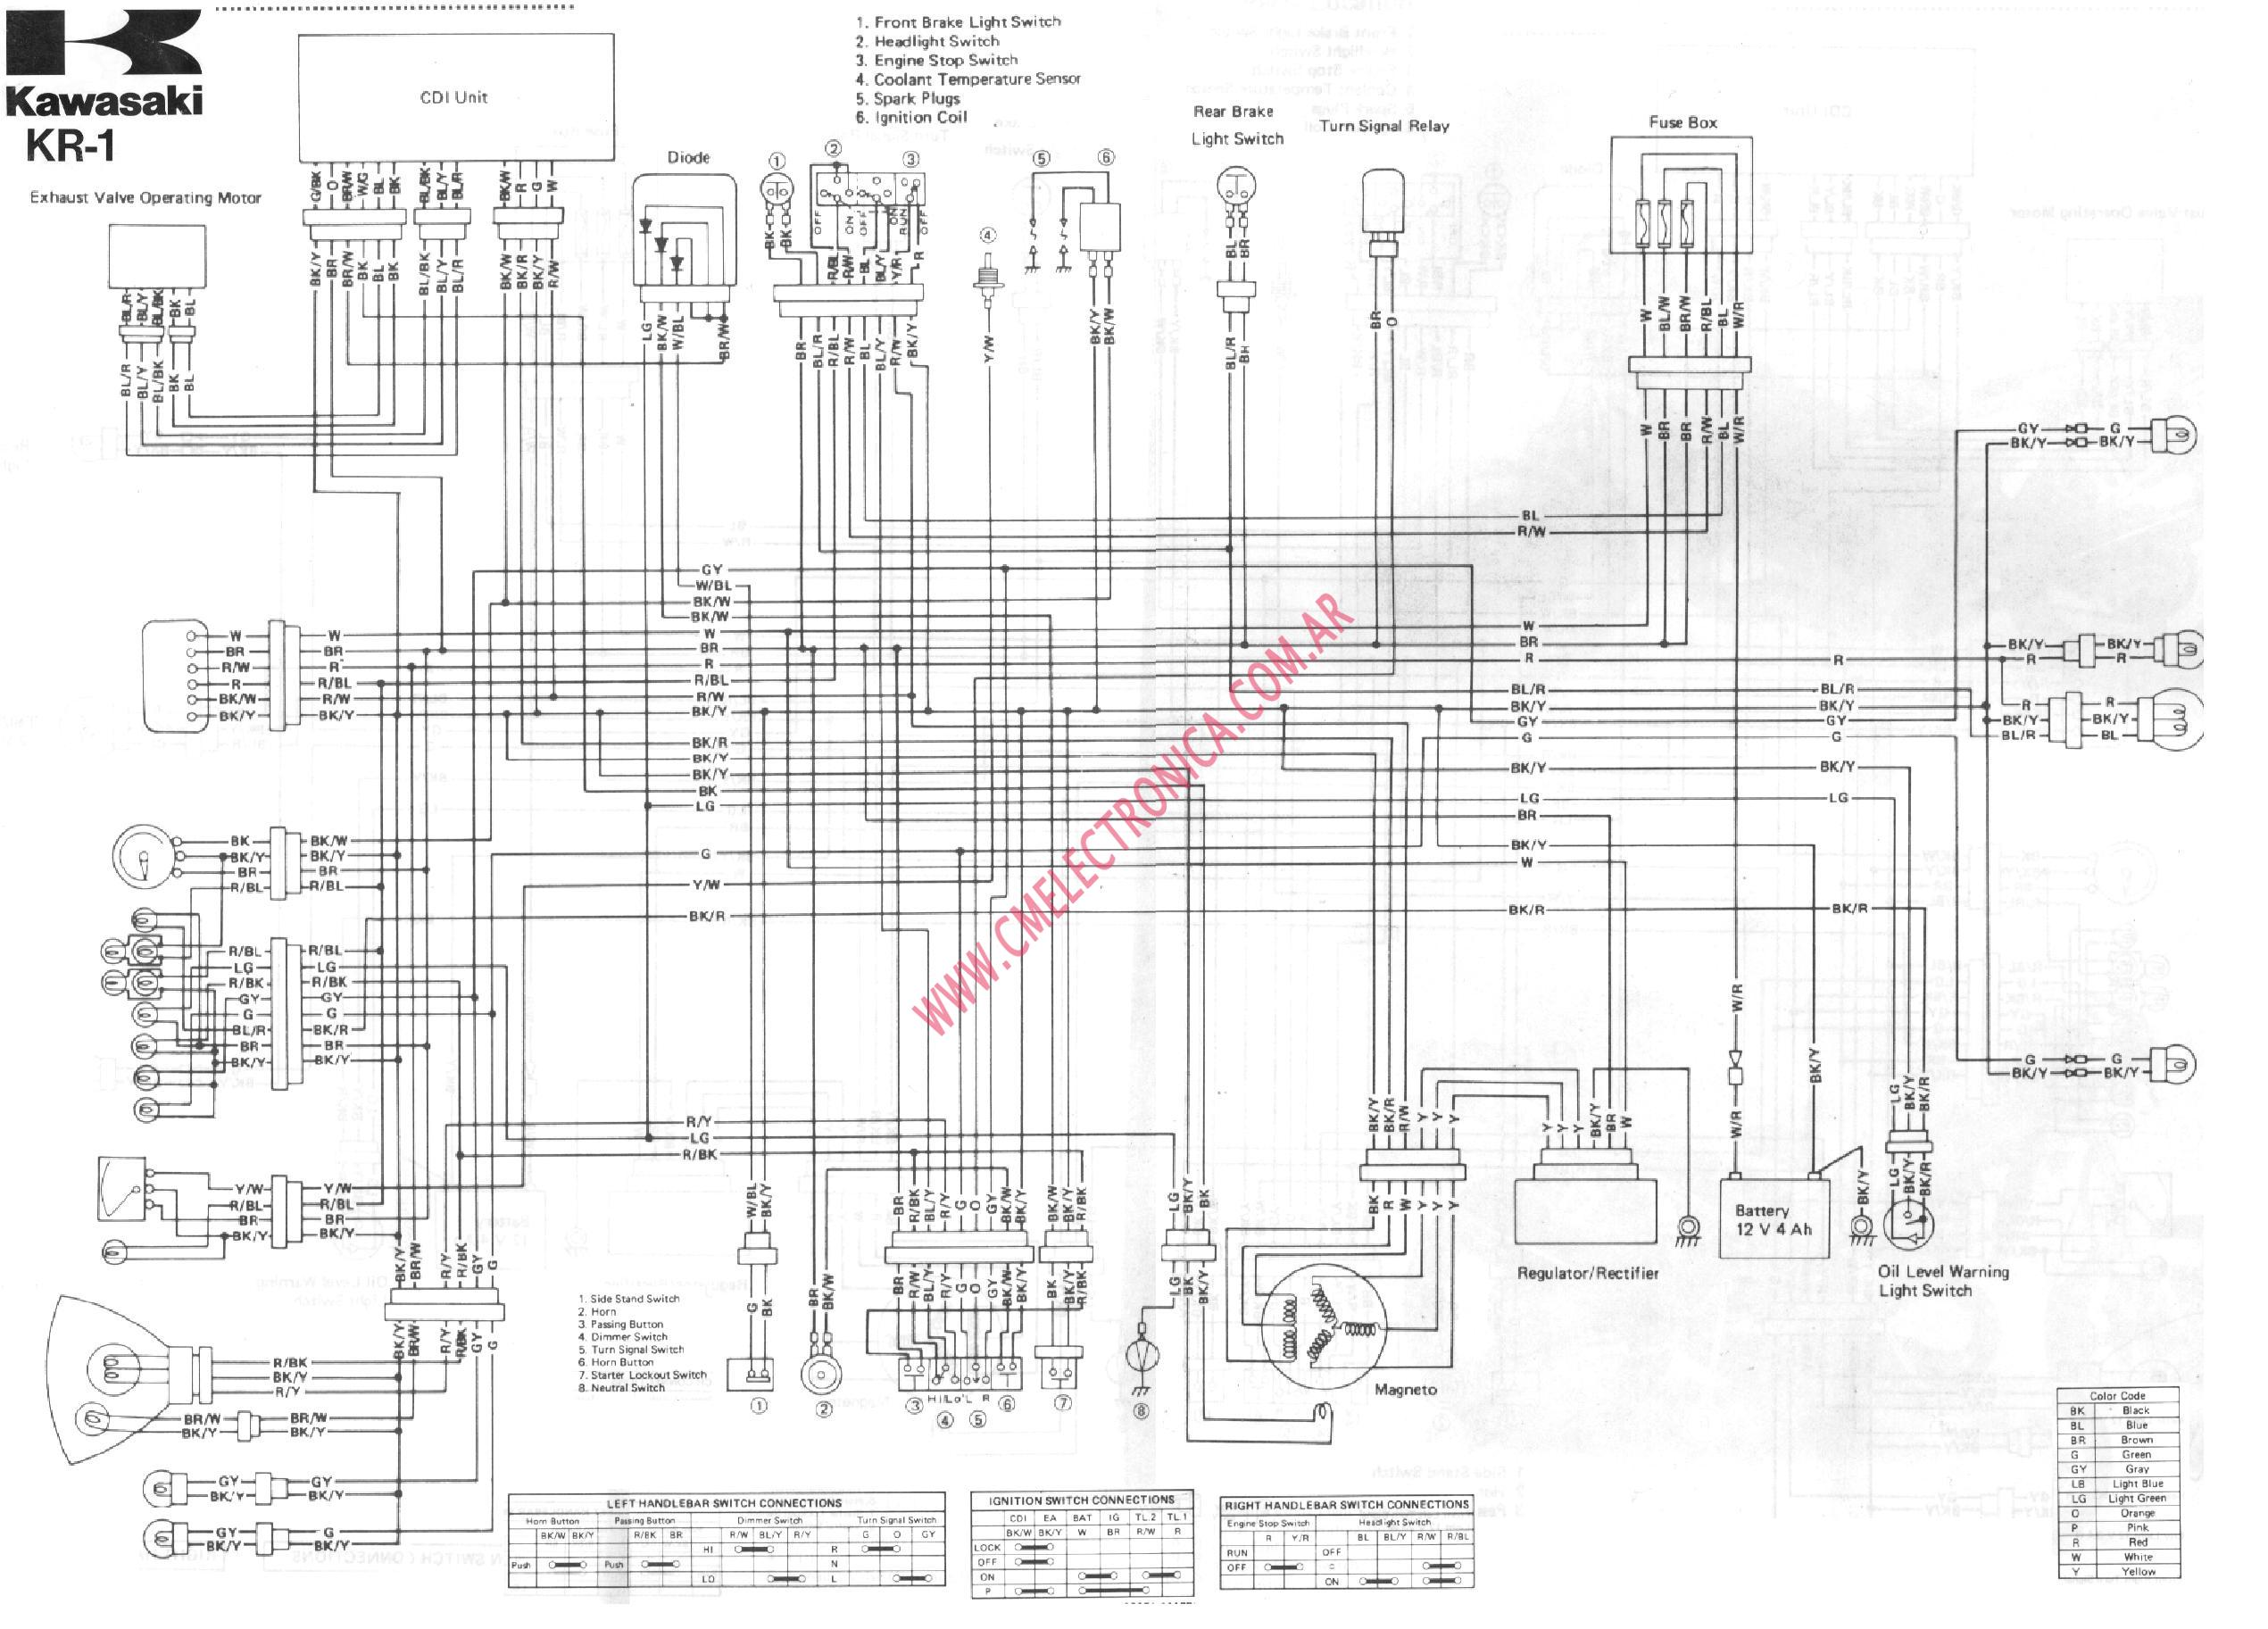 [DIAGRAM] 2002 Kawasaki Prairie Electrical Diagram FULL